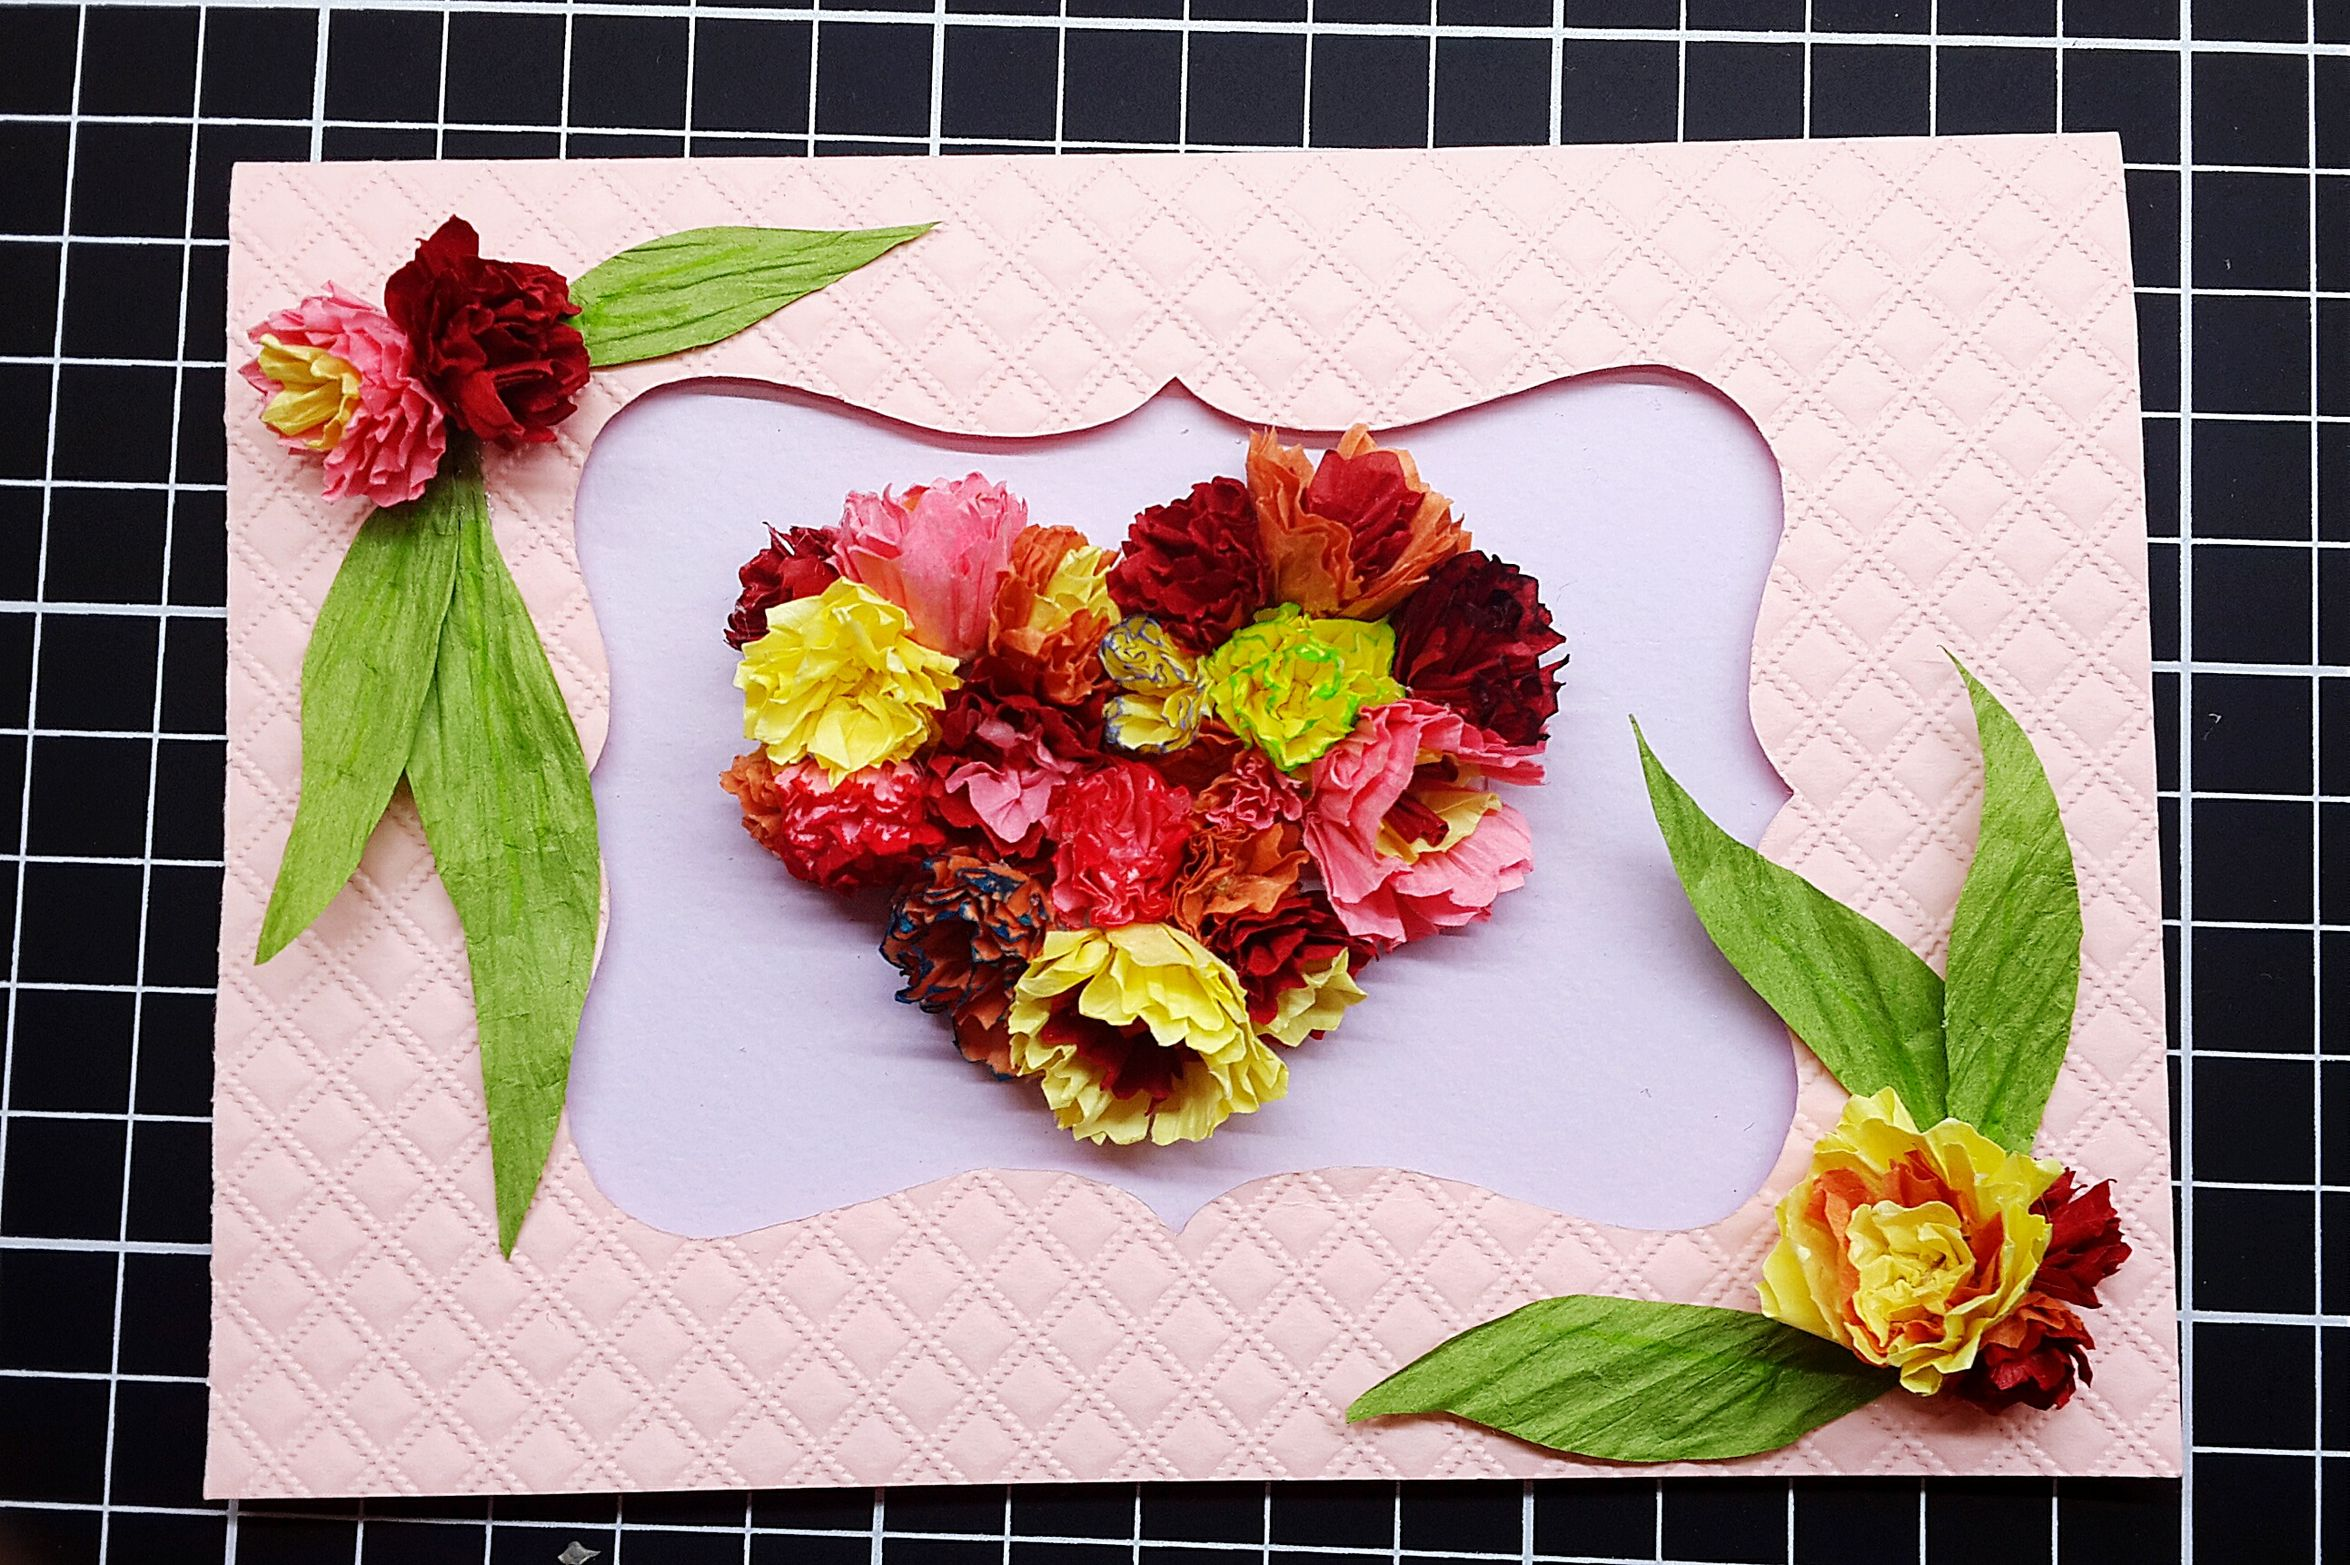 DIY Card Happymomsday Flowersflo 0510 Happy Mother's Day! Mommy Loveyou Carnations Heart